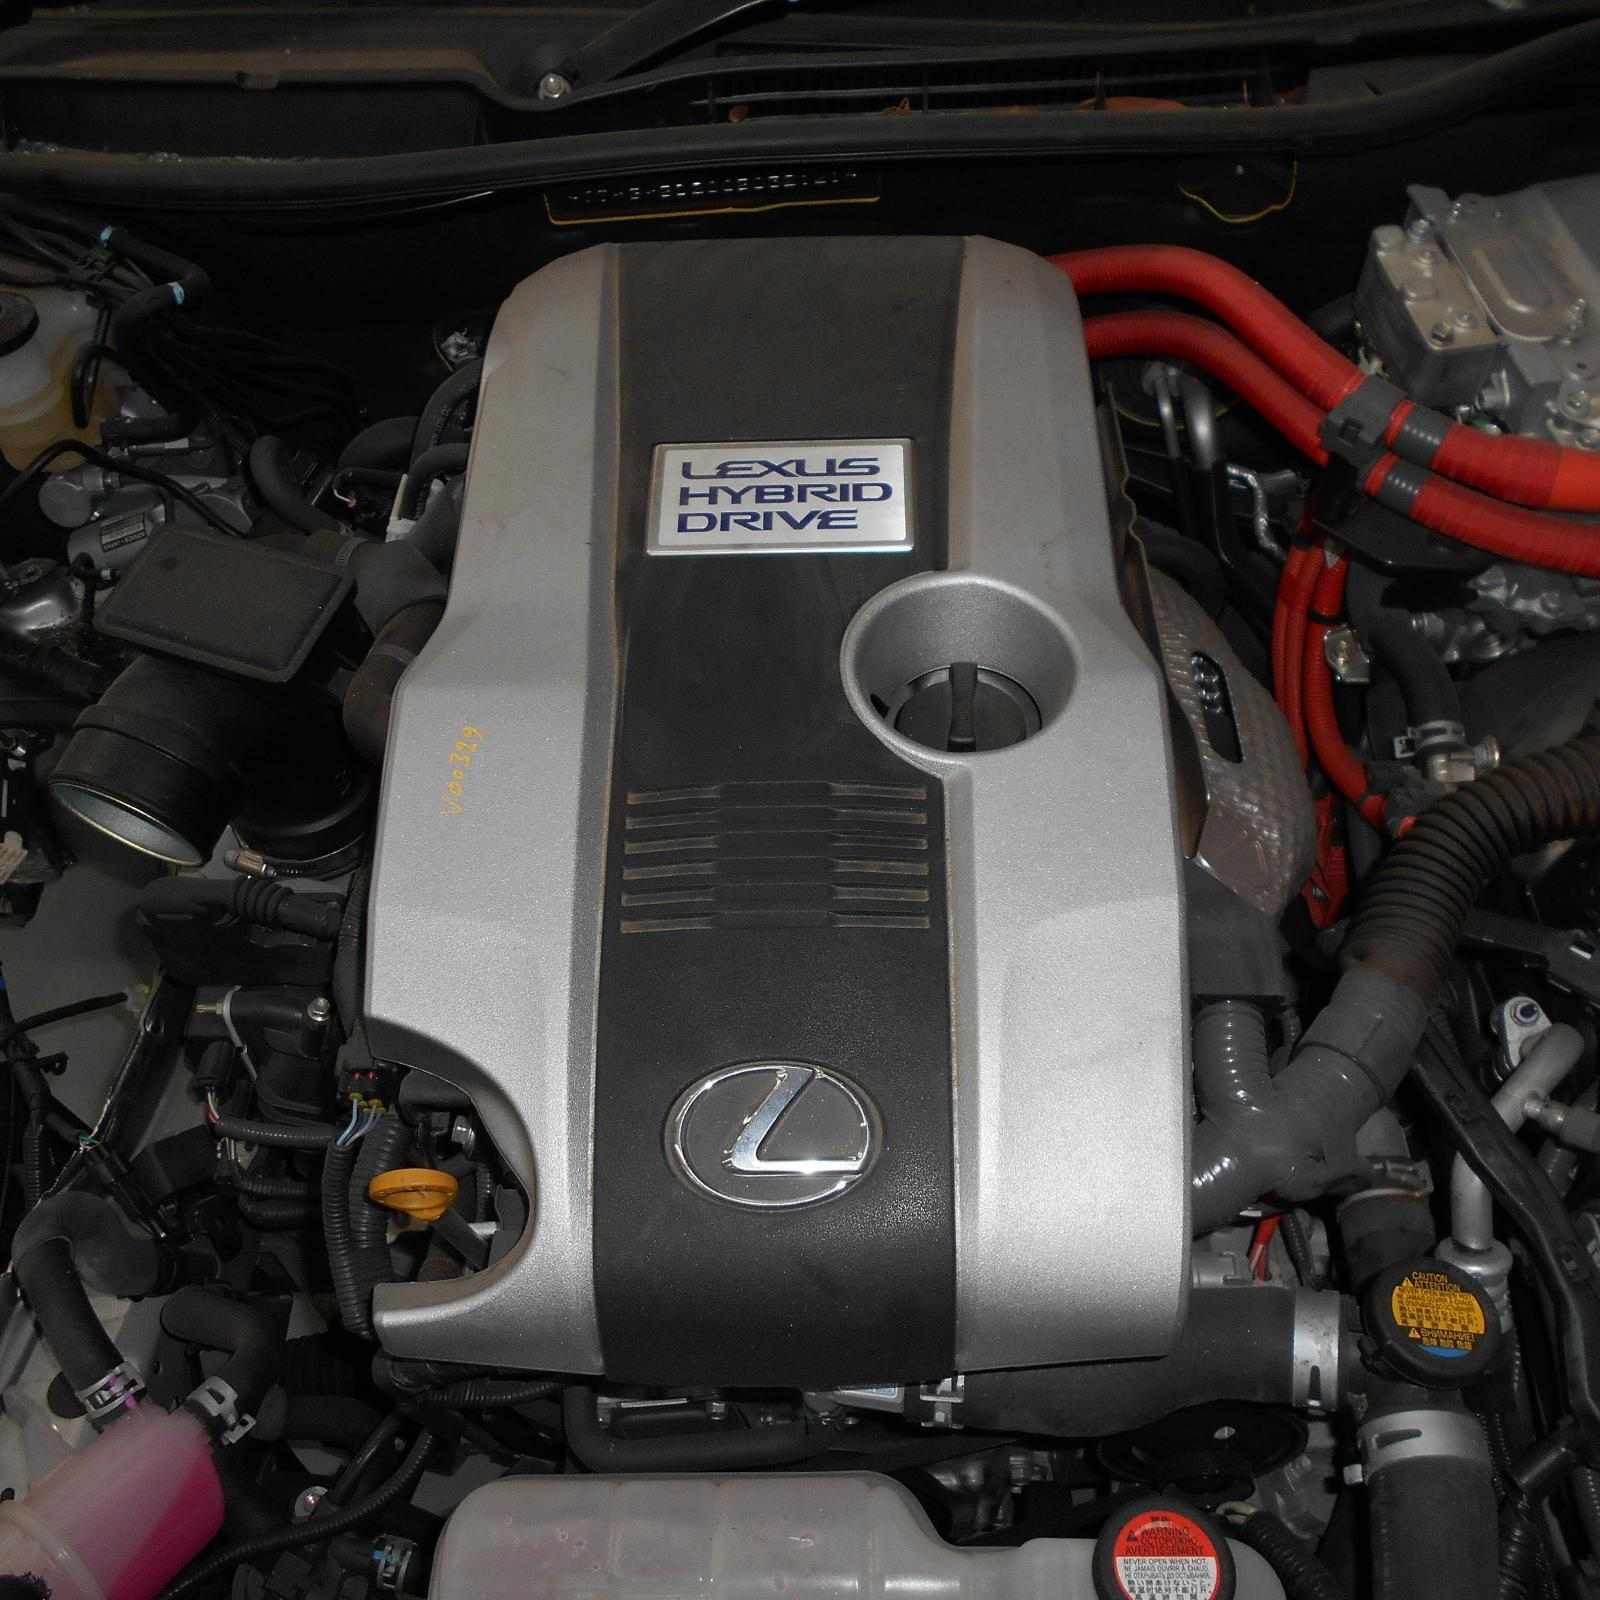 LEXUS IS, Engine, IS300h, PETROL, 2.5, 2AR-FSE, XE30, 07/13-